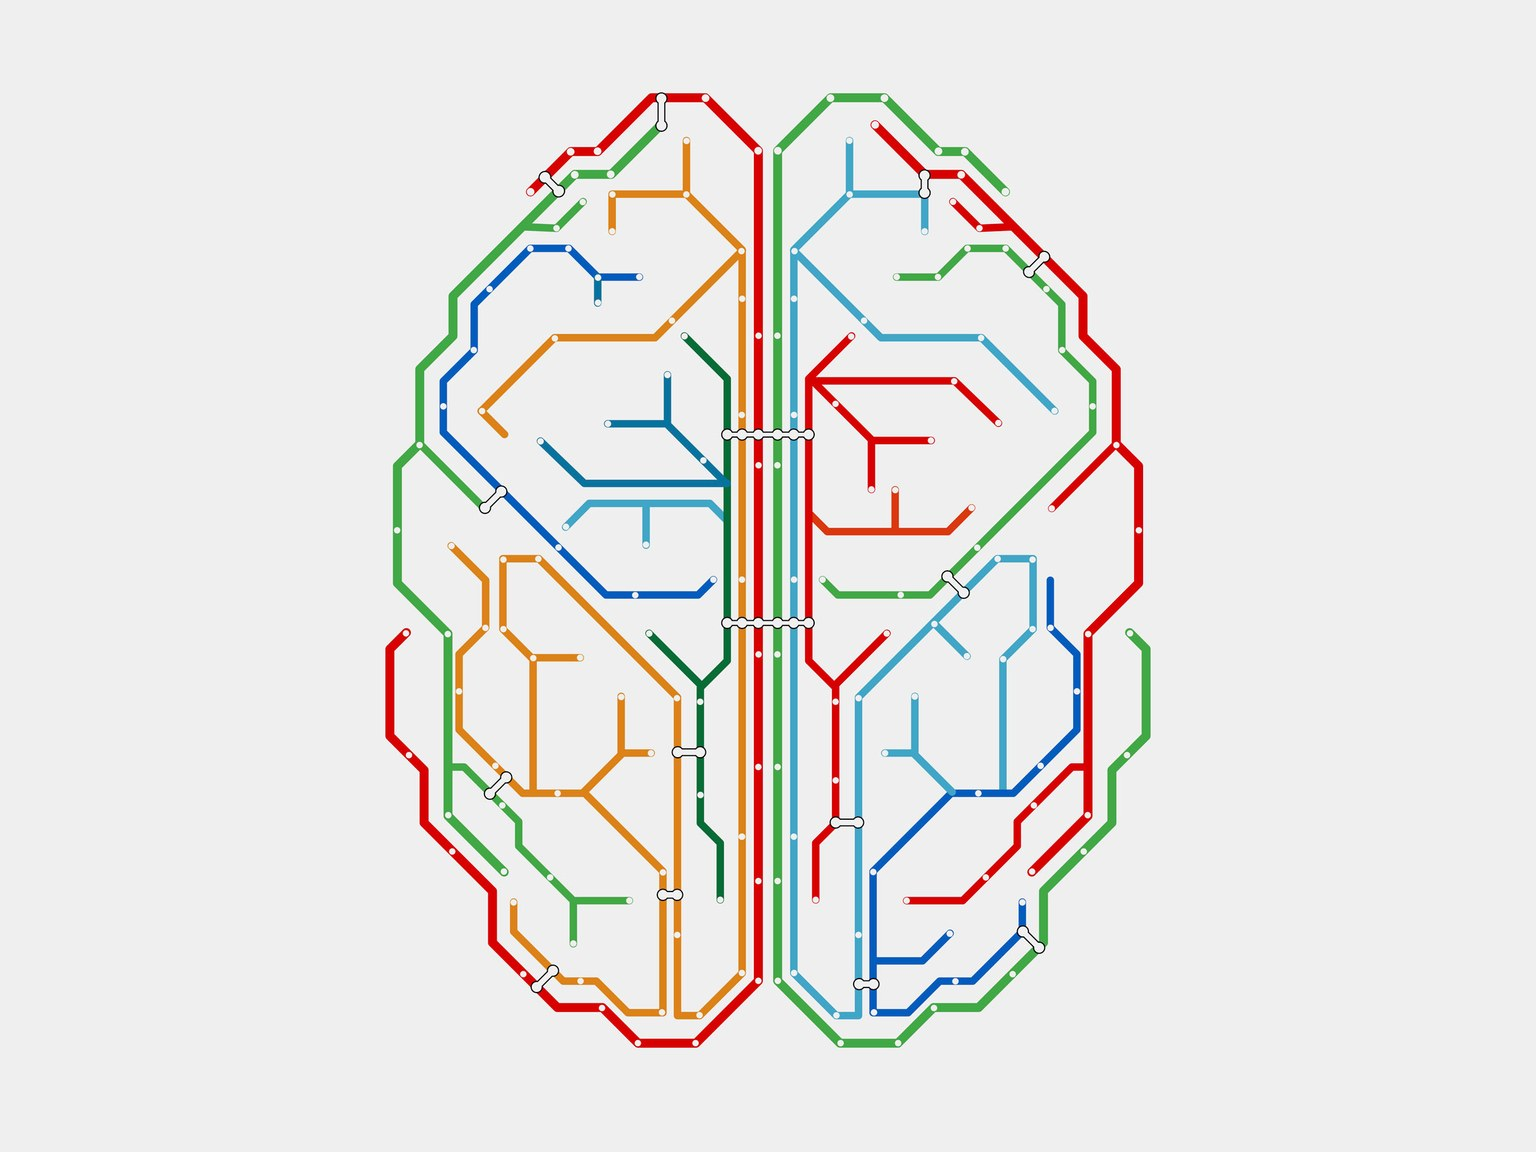 machine-learning-curriculum | :computer: Make machines learn so that